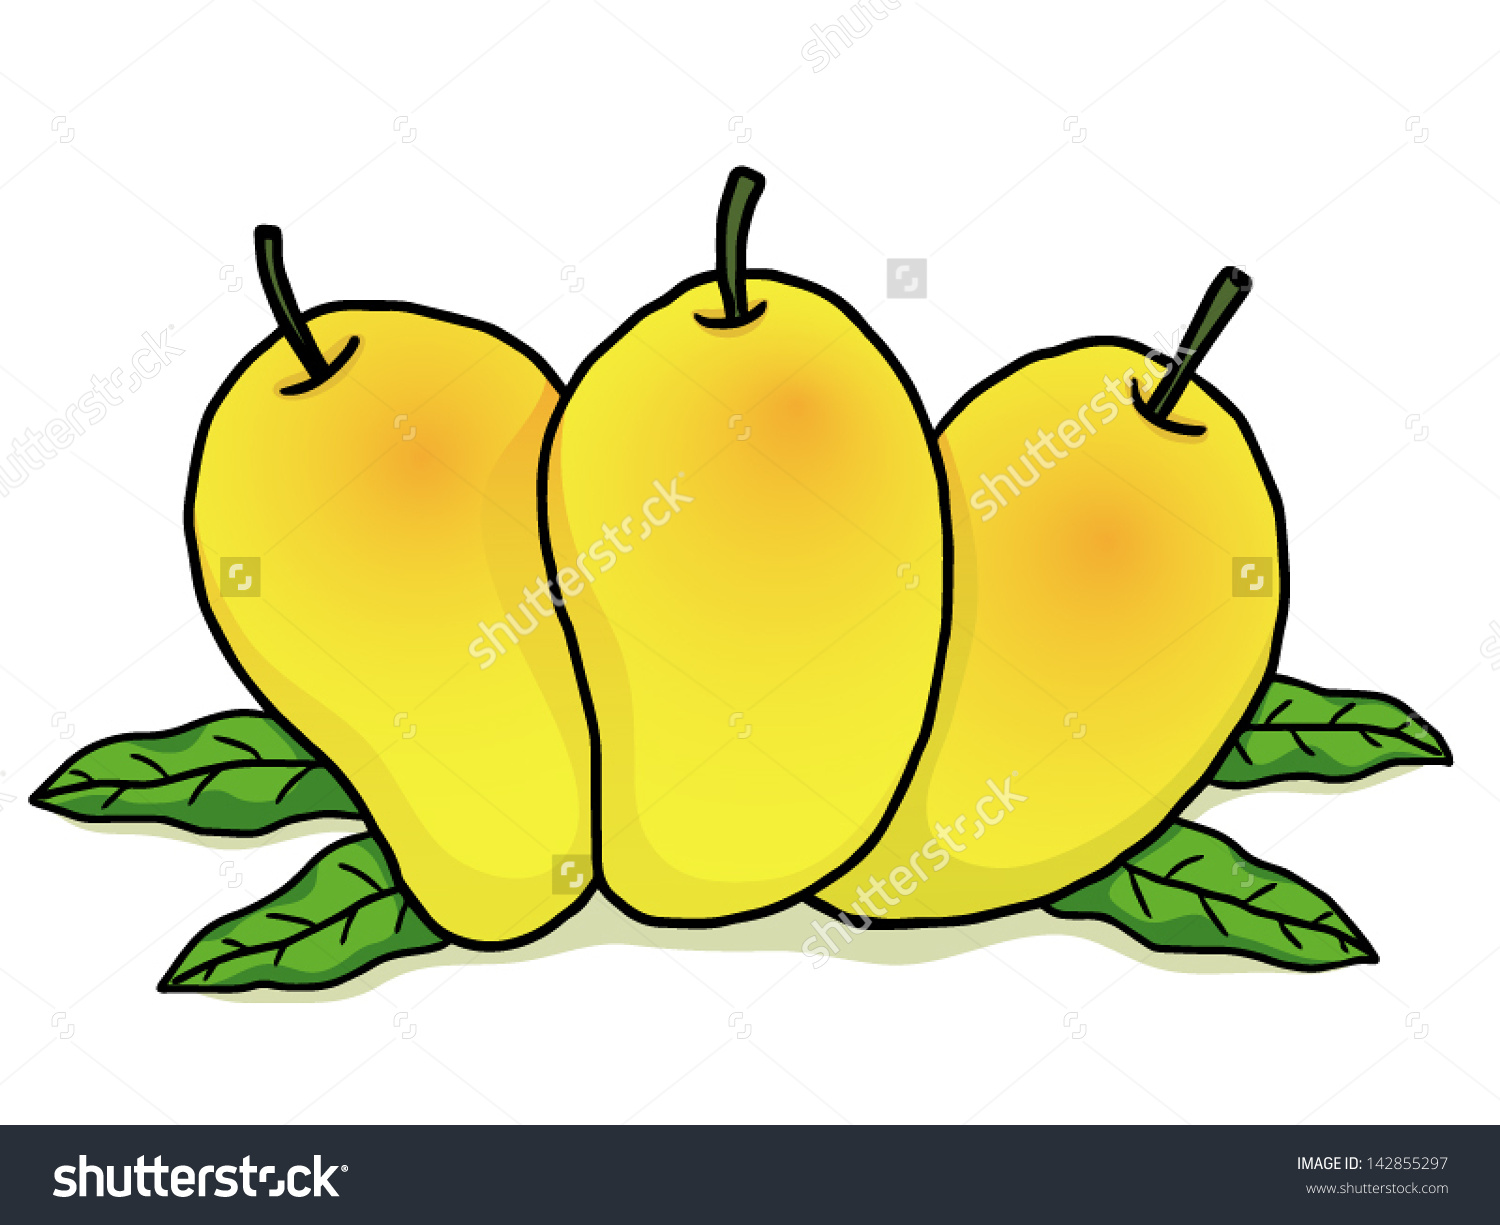 Pile free cliparts download. Mango clipart three